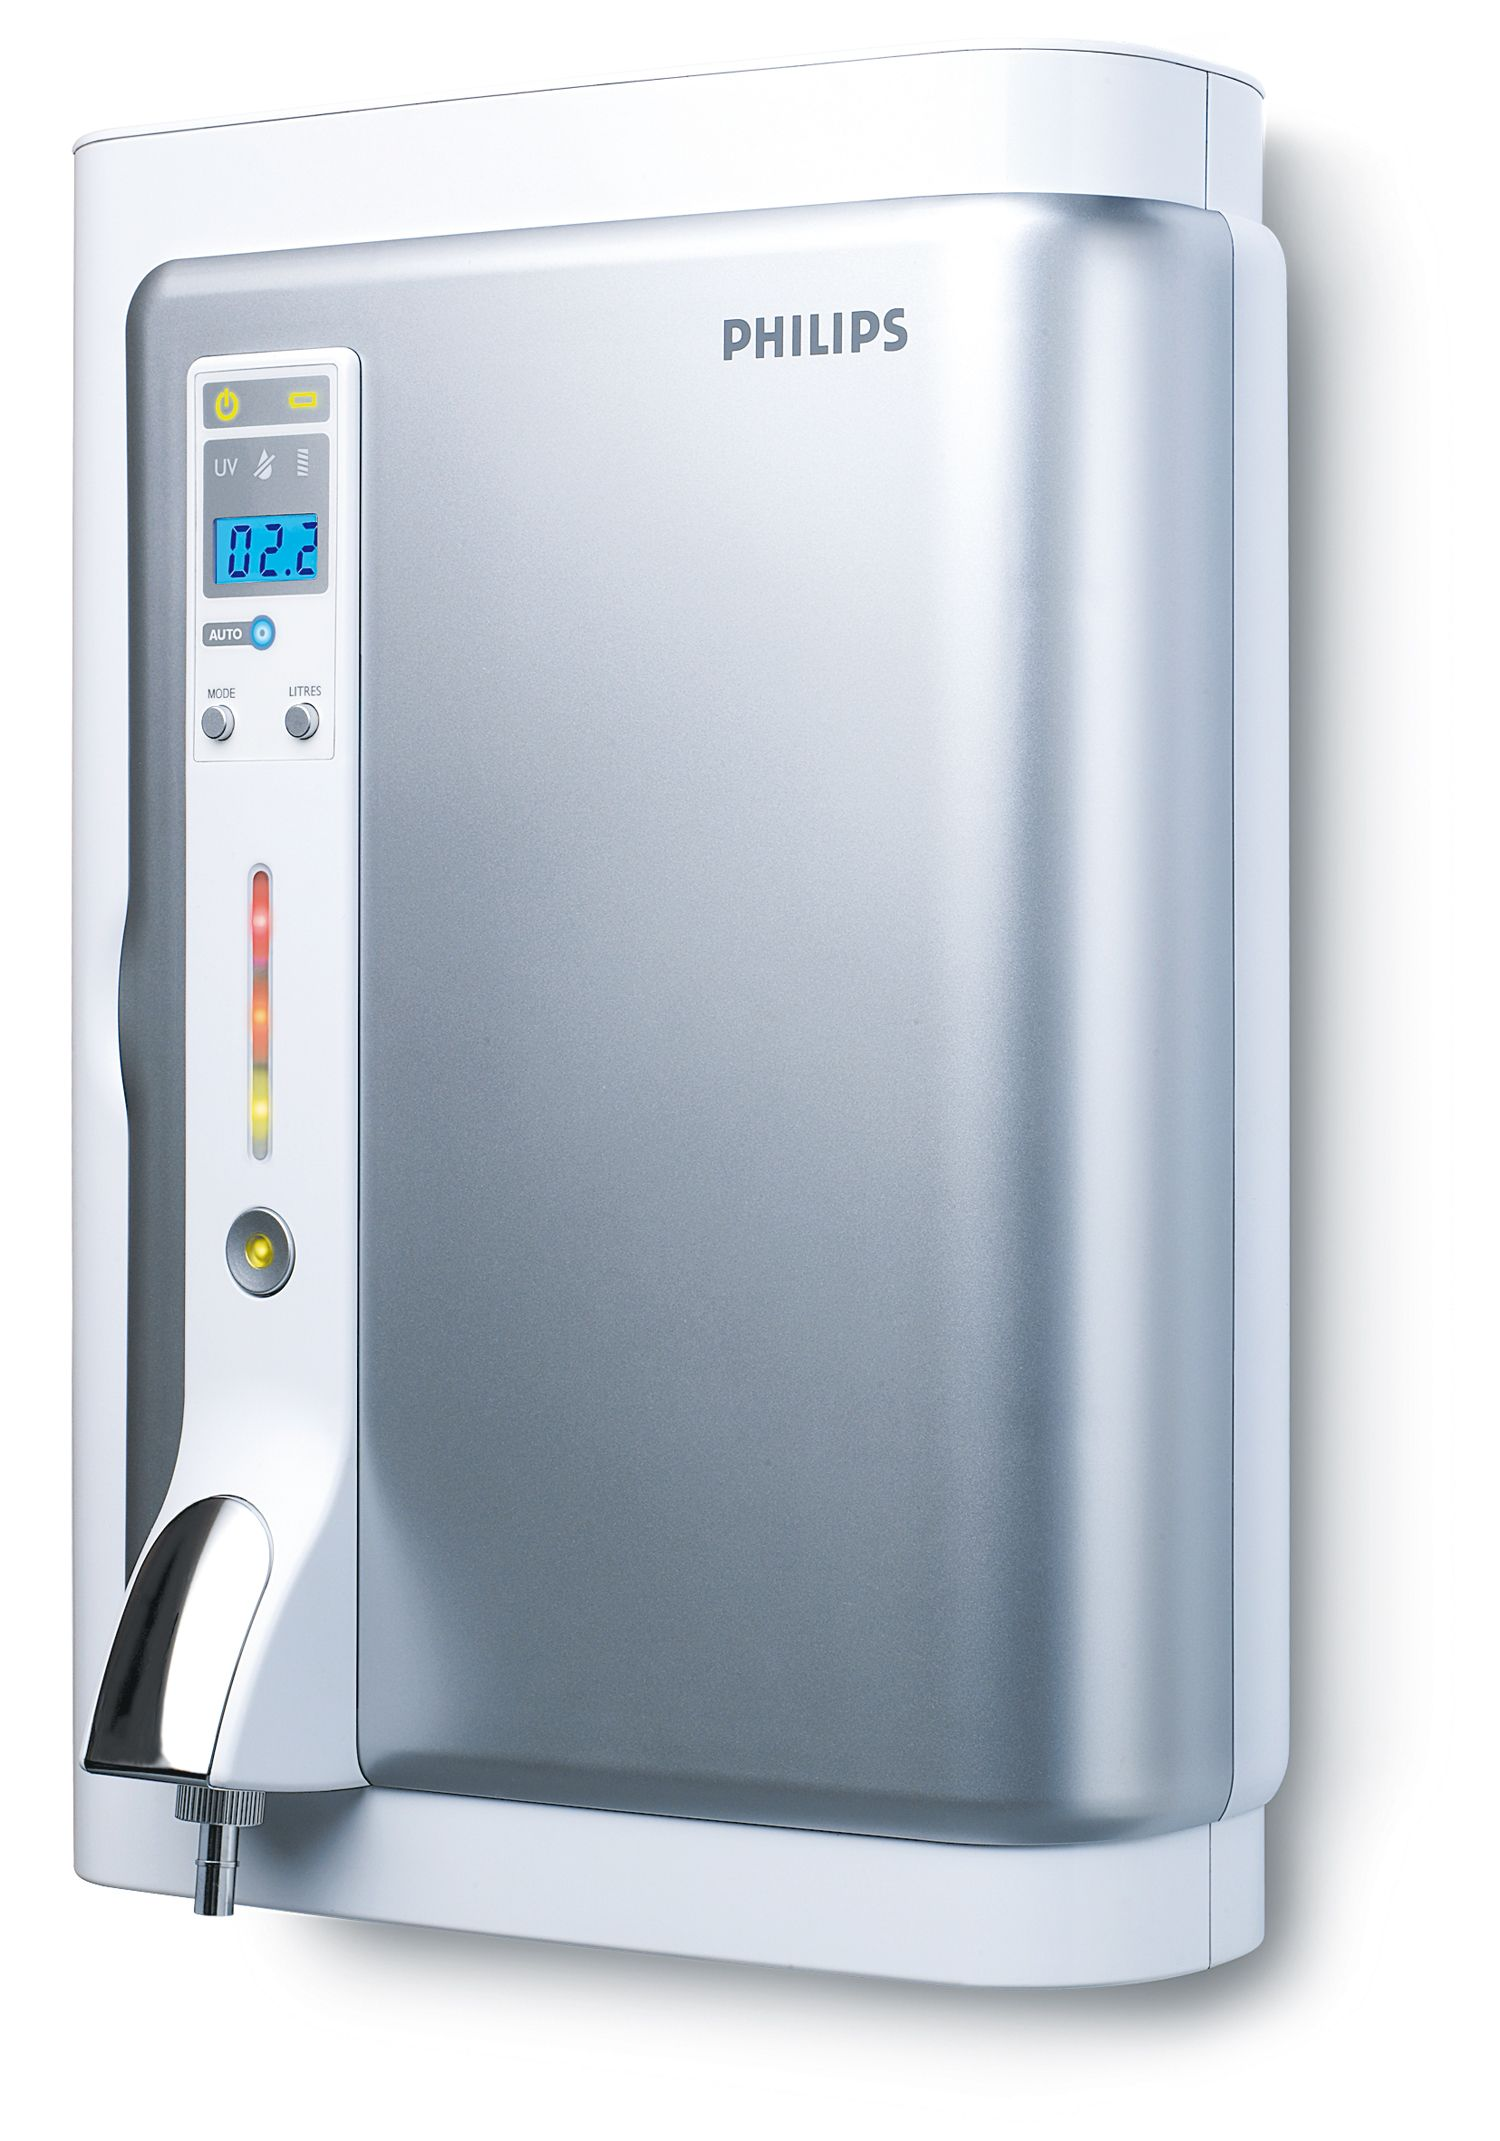 Philips Water Purifier Water purifier design, Water